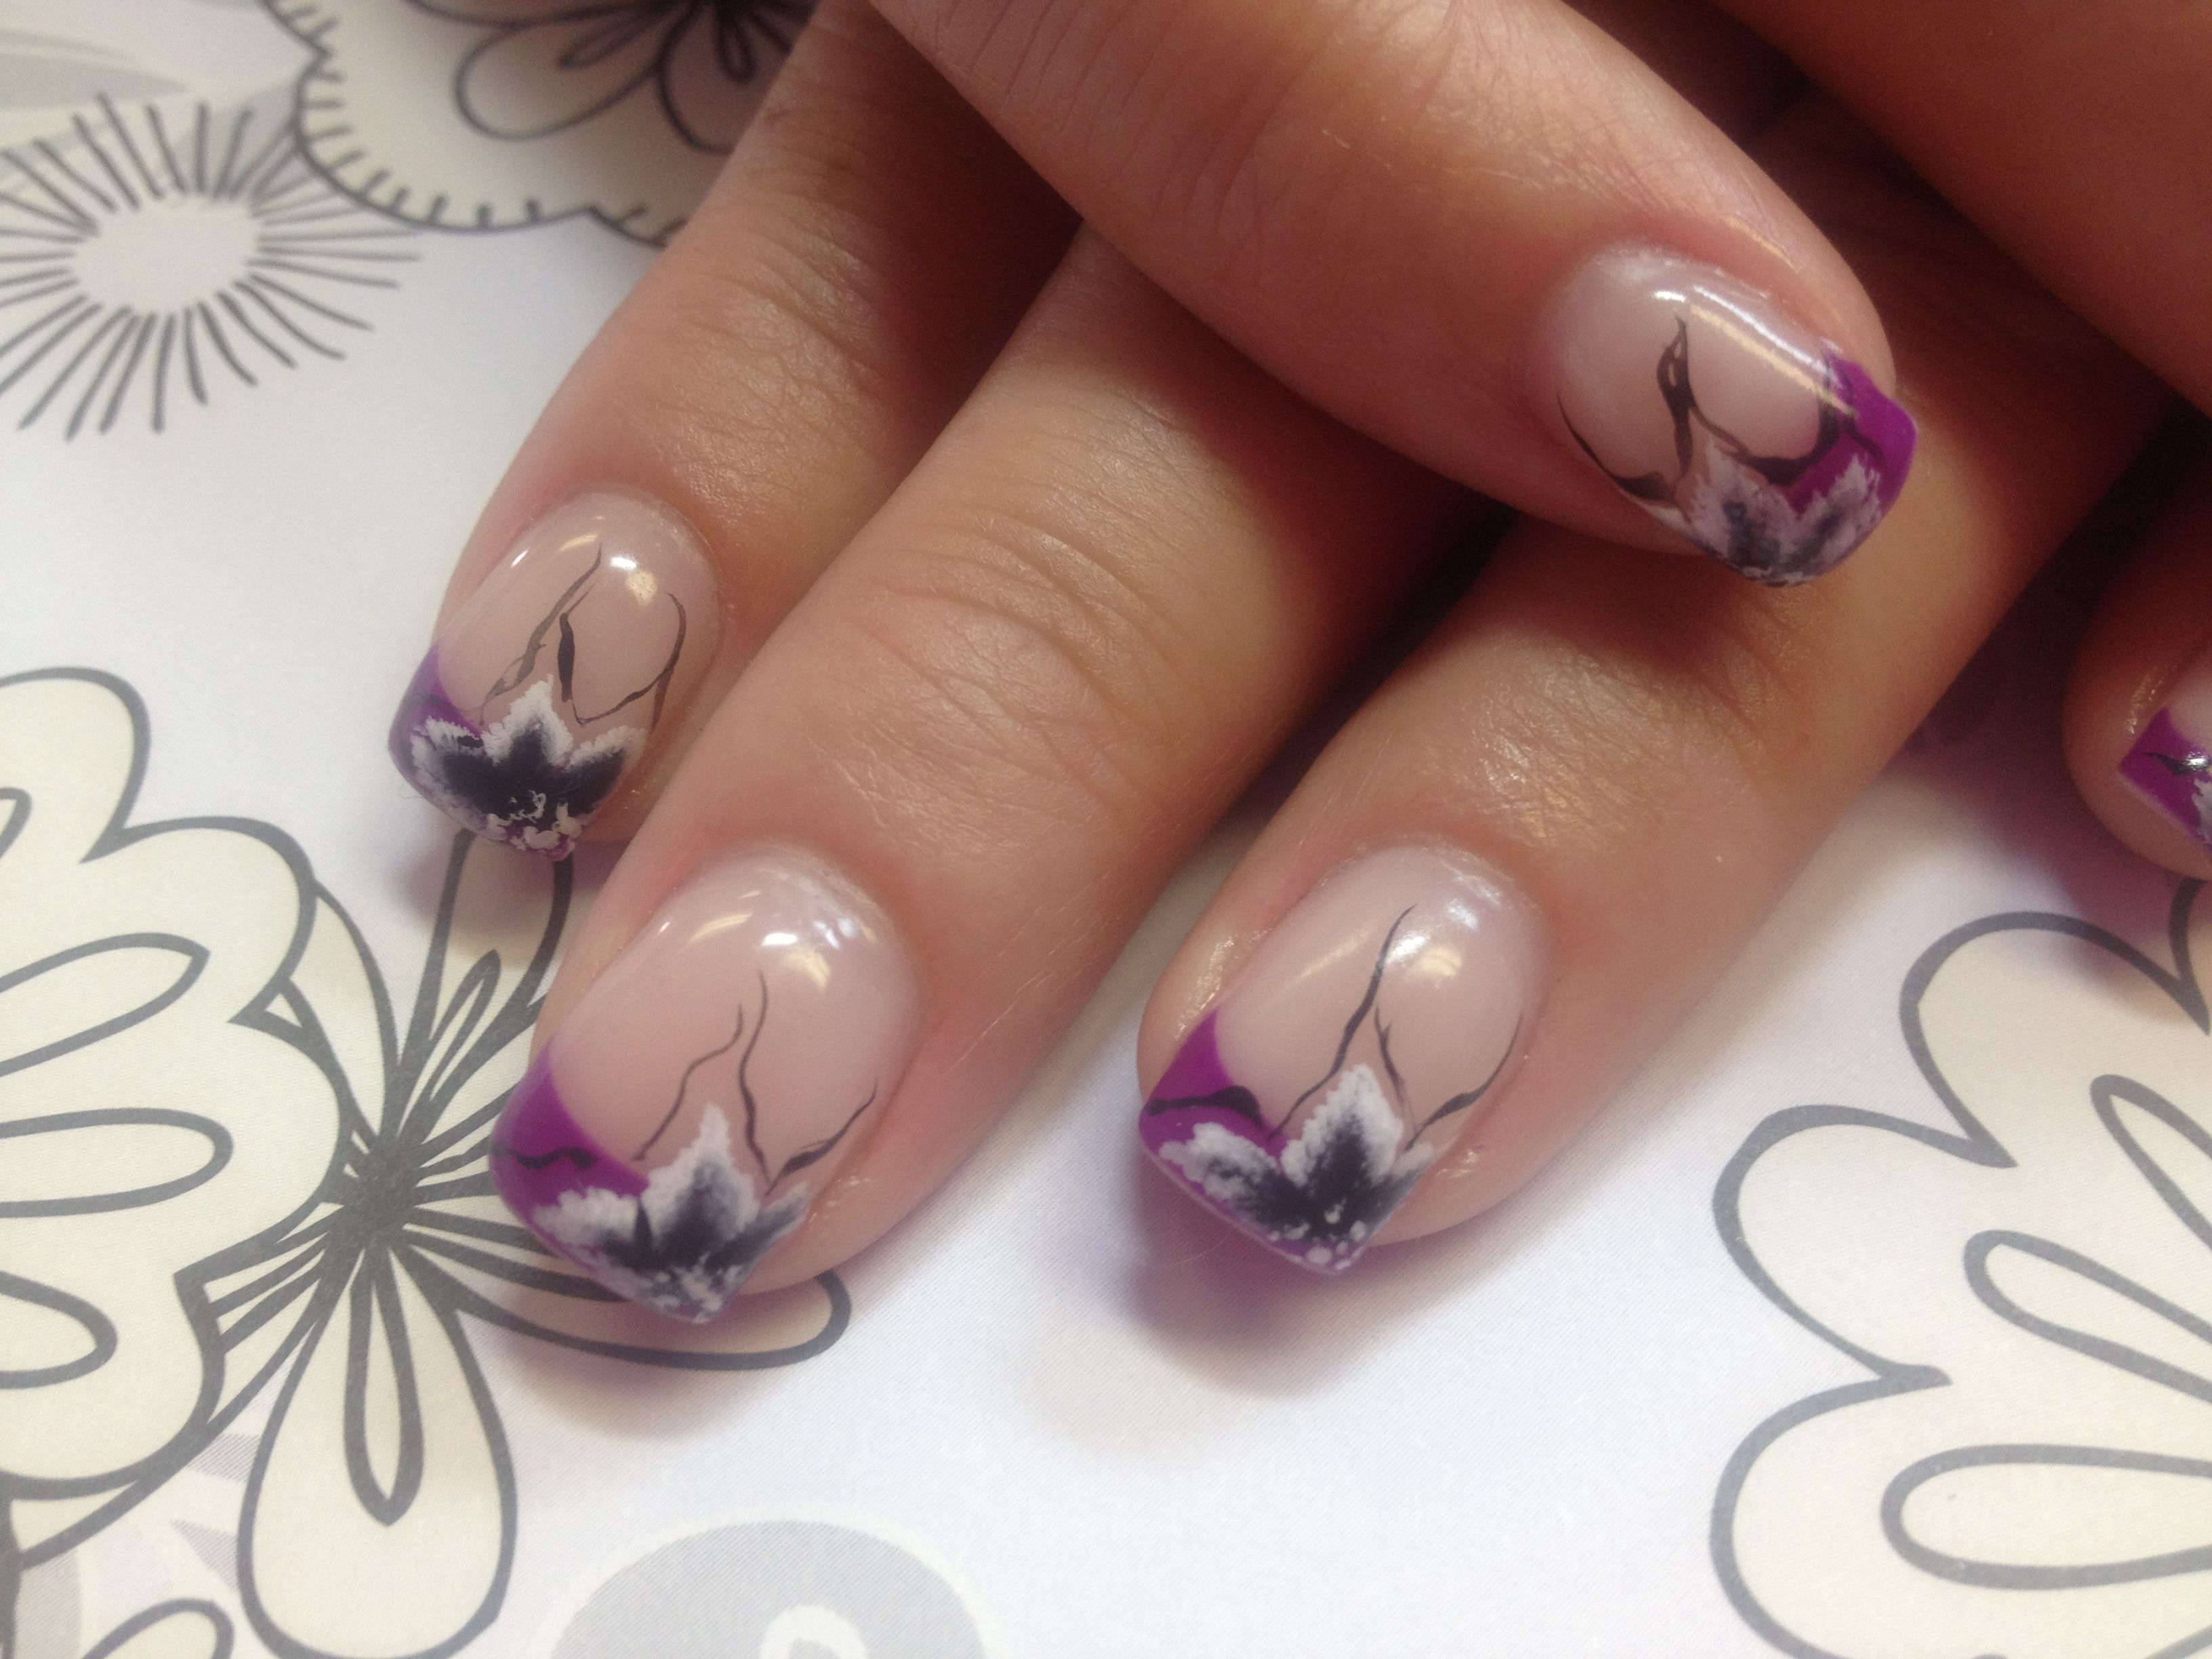 Nude / natural color nails with purple french manicure style tips ...